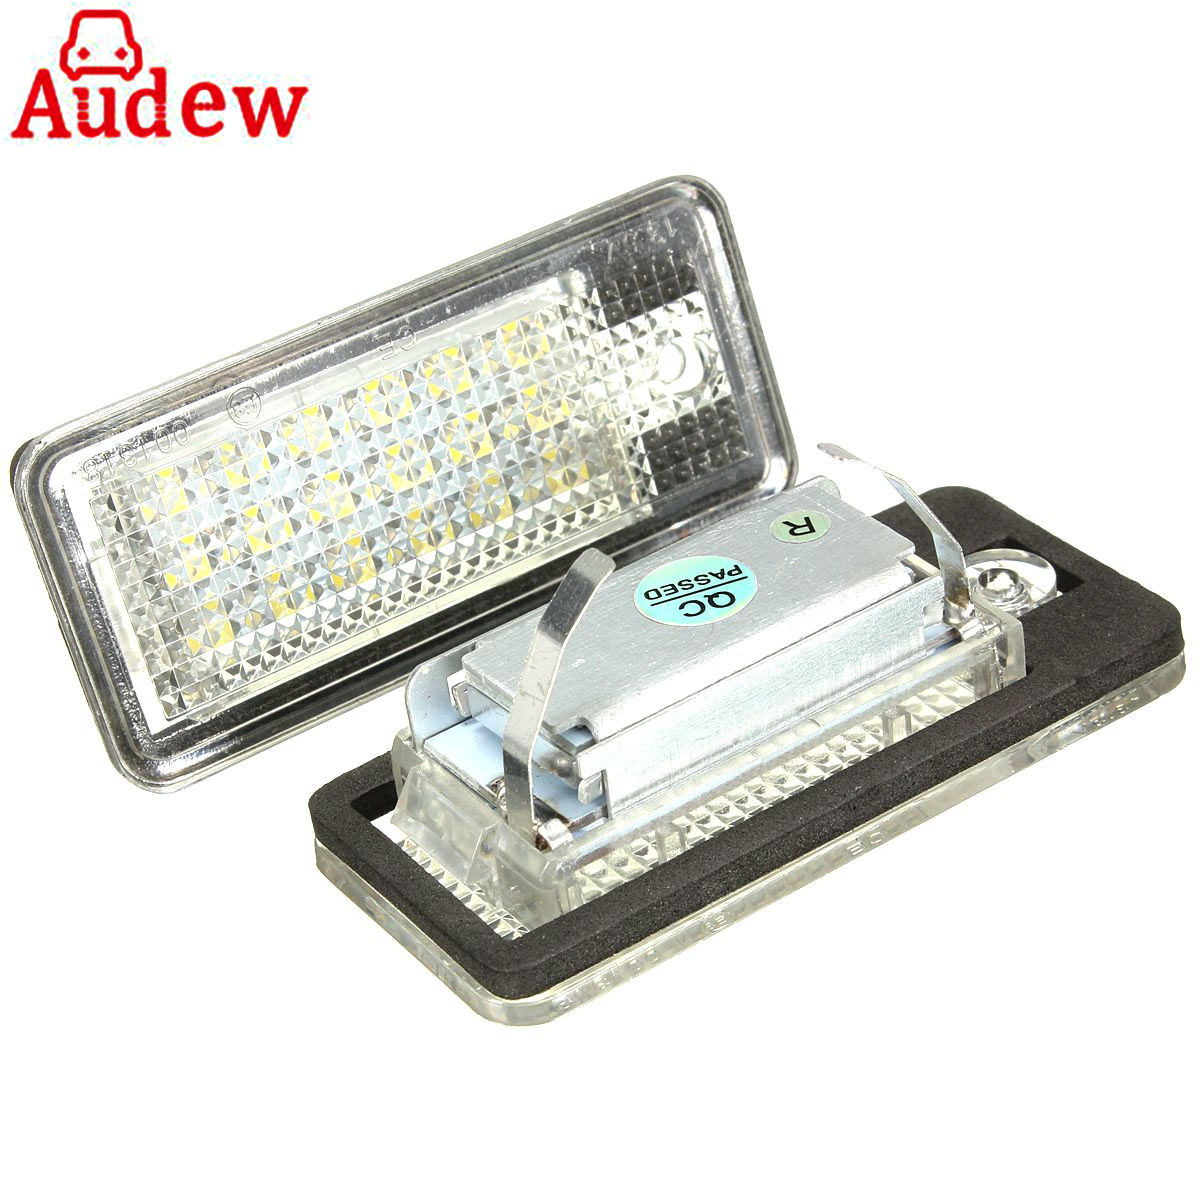 2Pcs Car Error Free 18 LED License Number Plate Light White Lamp For Audi A3 S3 A4 S4 B6 B7 A6 S6 A8 Q7 white car no canbus error 18smd led license number plate light lamp for audi a3 s3 a4 s4 b6 b7 a6 s6 a8 q7 147 page 8